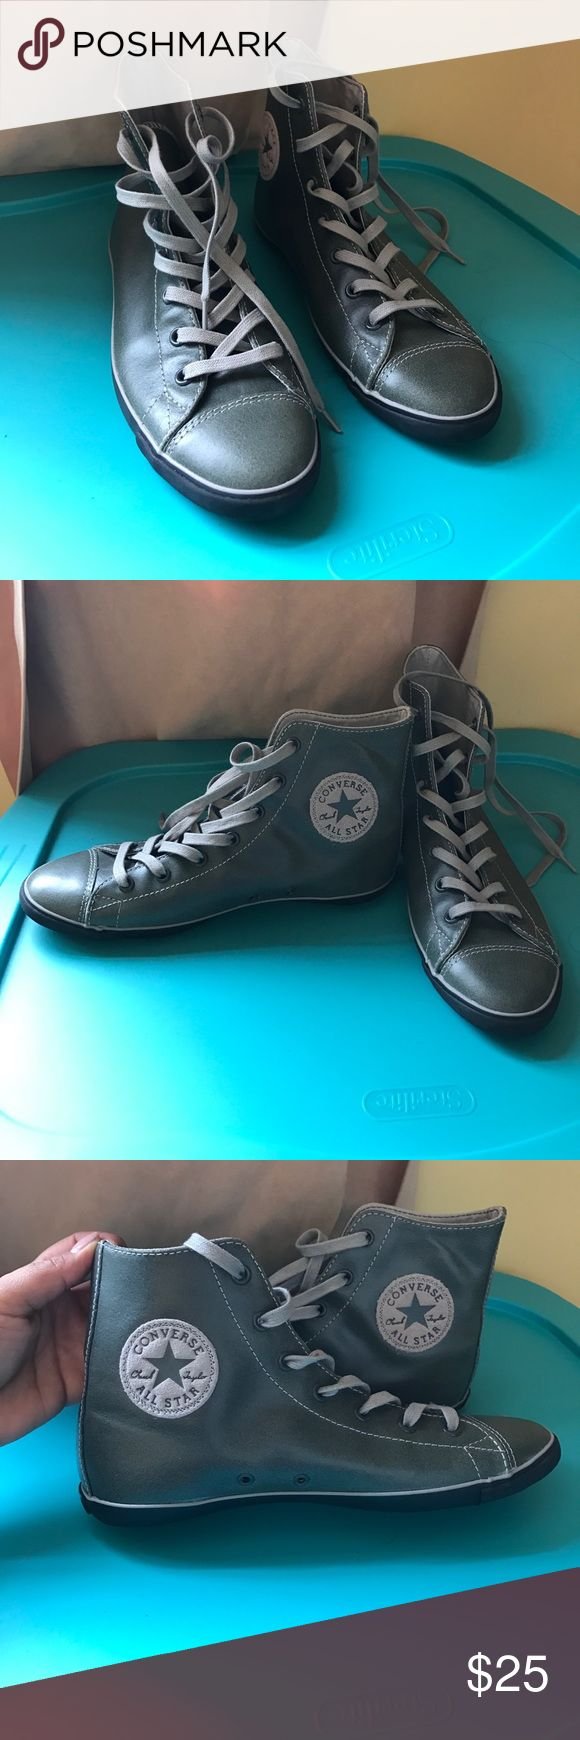 High top sneakers Converse leather high top sneakers; worn once. Converse Shoes Sneakers